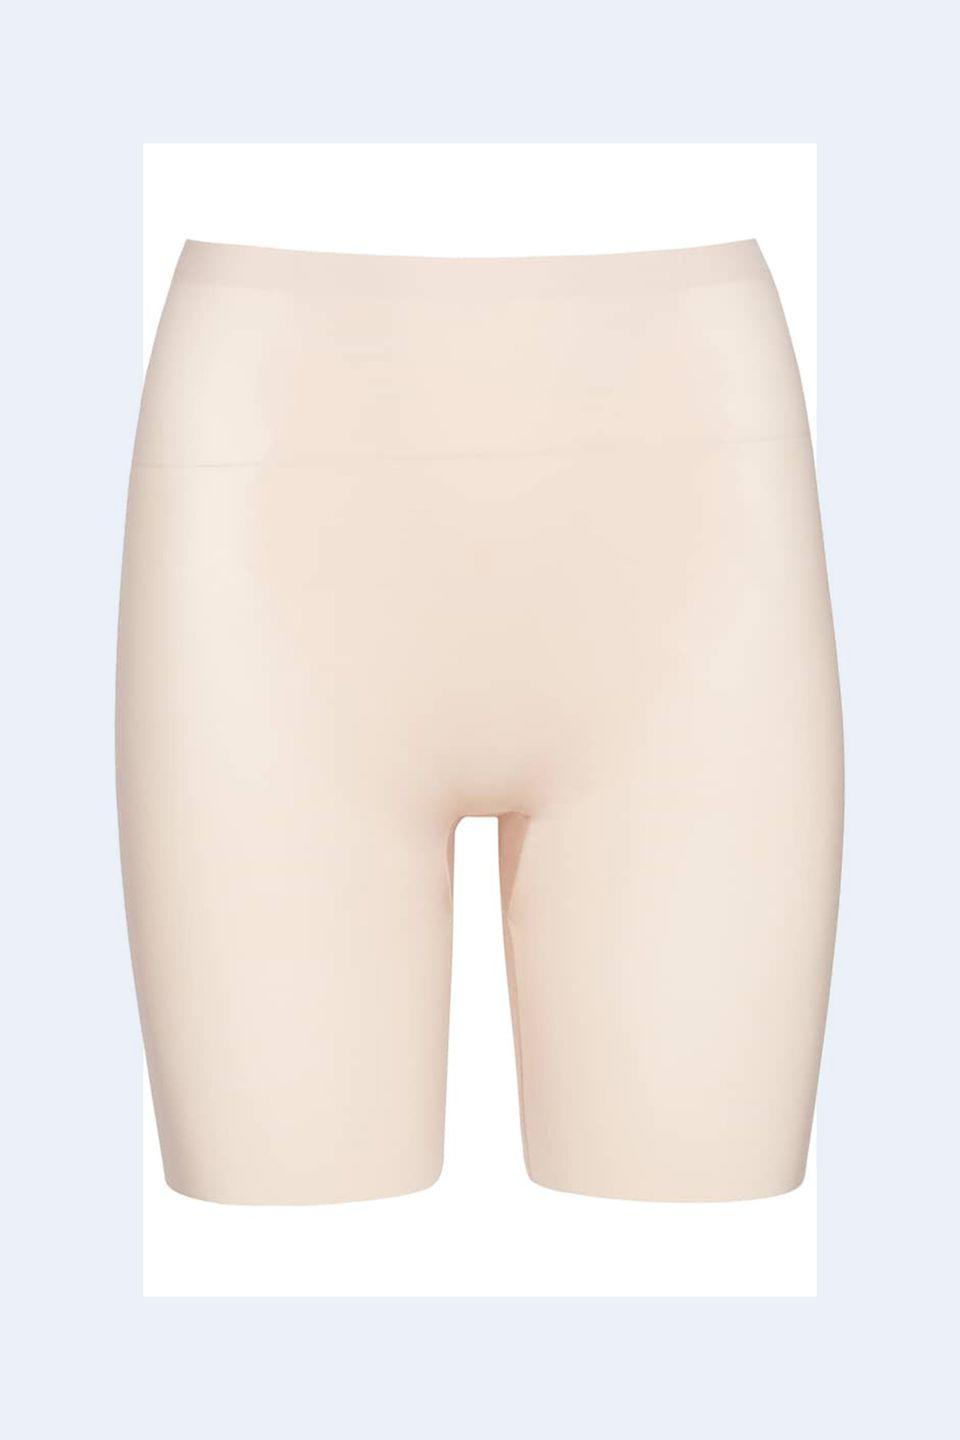 """<p><a rel=""""nofollow noopener"""" href=""""https://shop.nordstrom.com/s/spanx-thinstincts-mid-thigh-shorts/4287438?origin=keywordsearch-personalizedsort&breadcrumb=Home%2FAll%20Results&color=soft%20nude"""" target=""""_blank"""" data-ylk=""""slk:SHOP NOW"""" class=""""link rapid-noclick-resp"""">SHOP NOW</a> <em>Spanx Shorts, $58</em></p><p>""""Wearing the proper shapewear underneath everything helps to give you <strong>smooth lines</strong>."""" <em>-<a rel=""""nofollow noopener"""" href=""""https://www.juliaperrystyle.com/"""" target=""""_blank"""" data-ylk=""""slk:Julia Perry"""" class=""""link rapid-noclick-resp"""">Julia Perry</a></em></p>"""